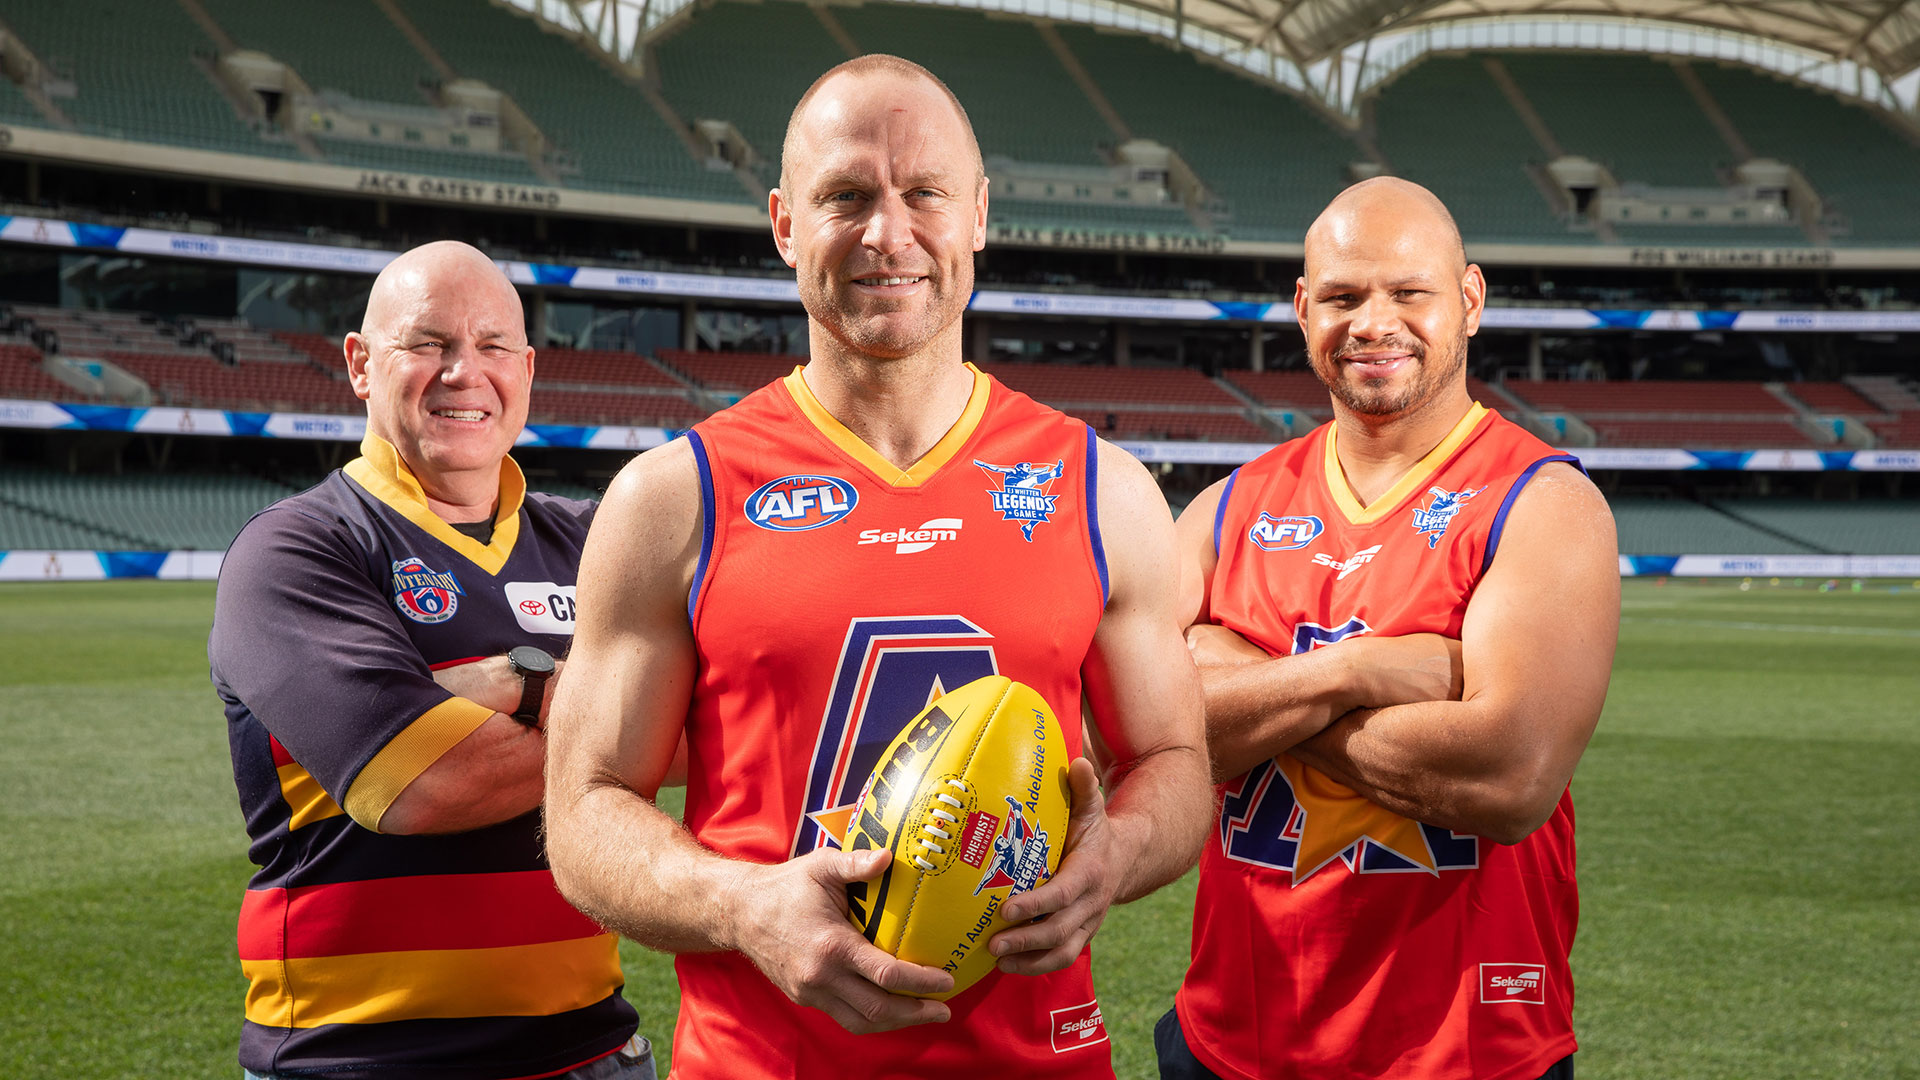 Squads released for the EJ Whitten Legends Game